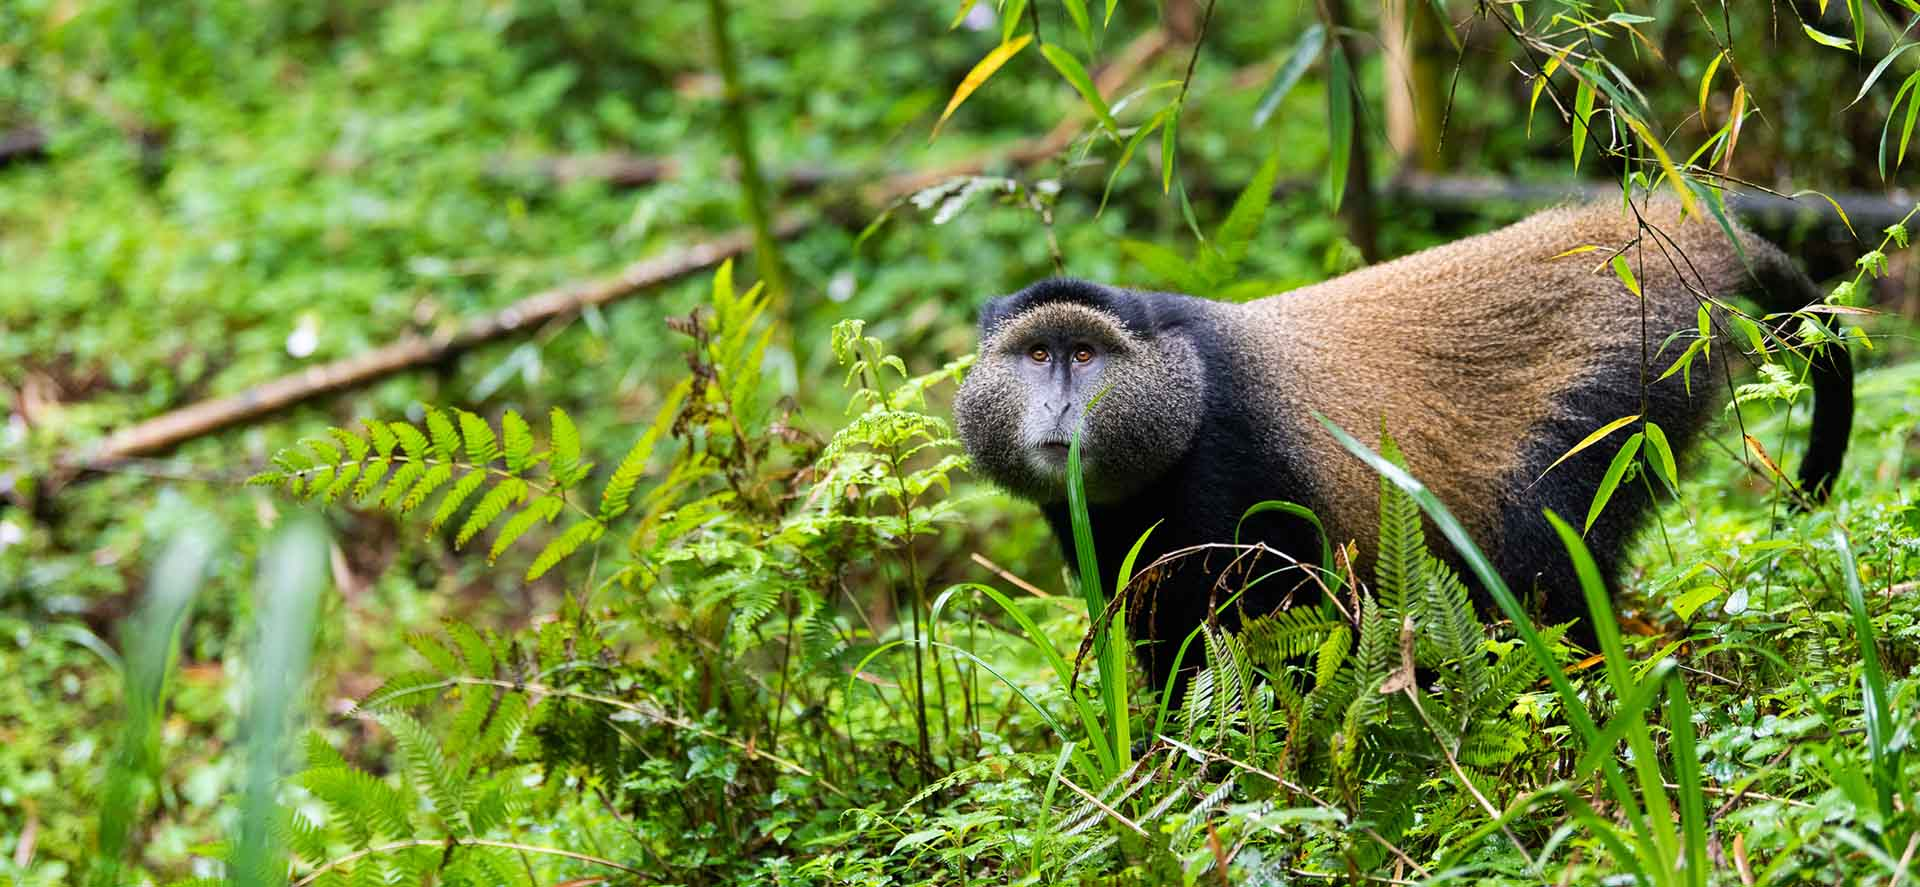 Golden Monkey trekking in Volcanoes national park